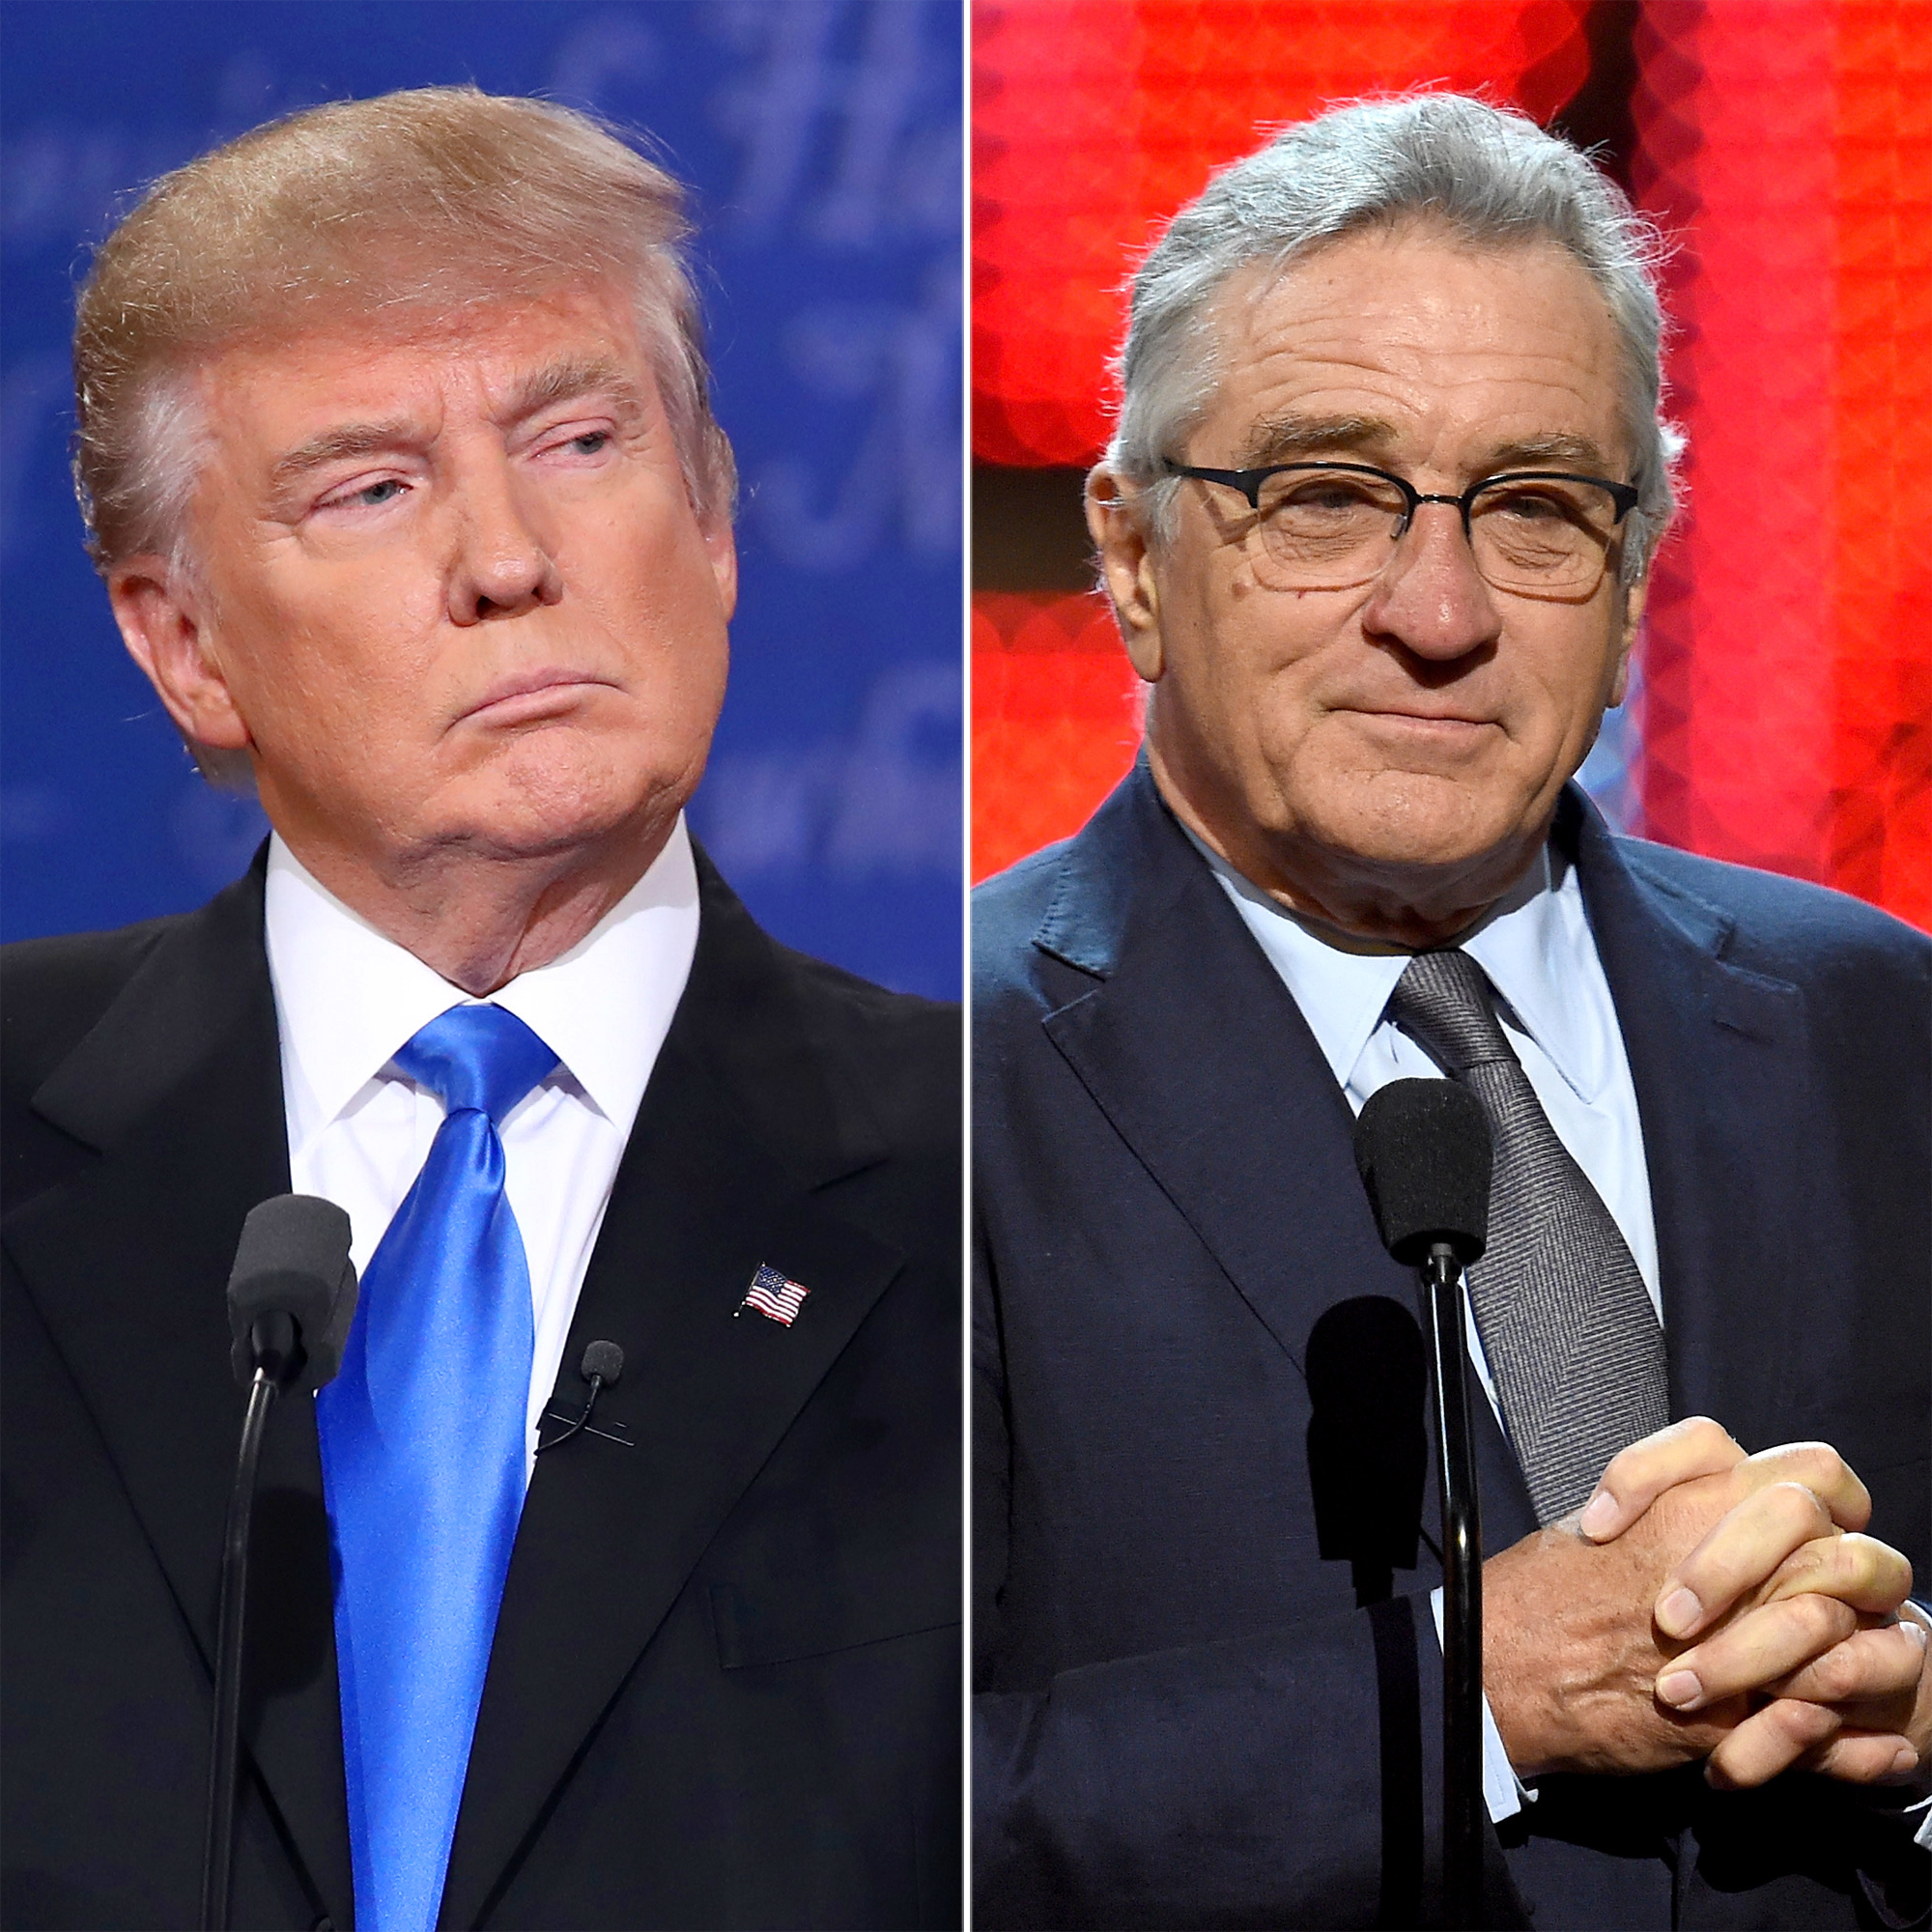 Donald Trump and Robert DeNiro